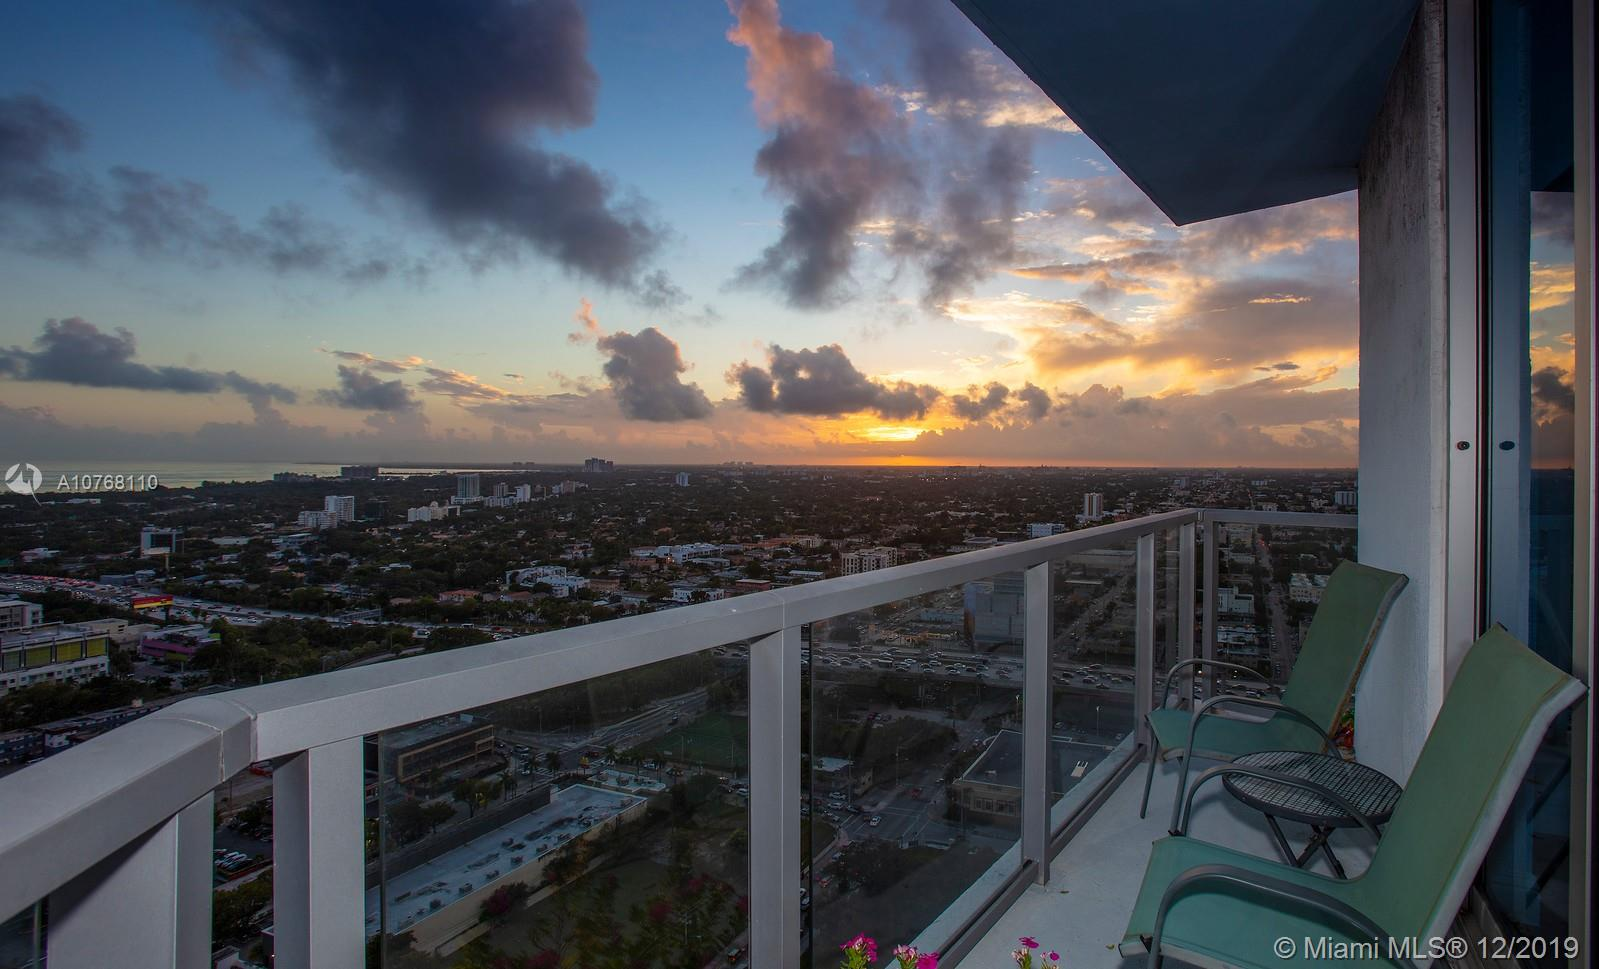 185 SW 7th St # 3102, Miami, Florida 33130, 2 Bedrooms Bedrooms, ,3 BathroomsBathrooms,Residential,For Sale,185 SW 7th St # 3102,A10768110